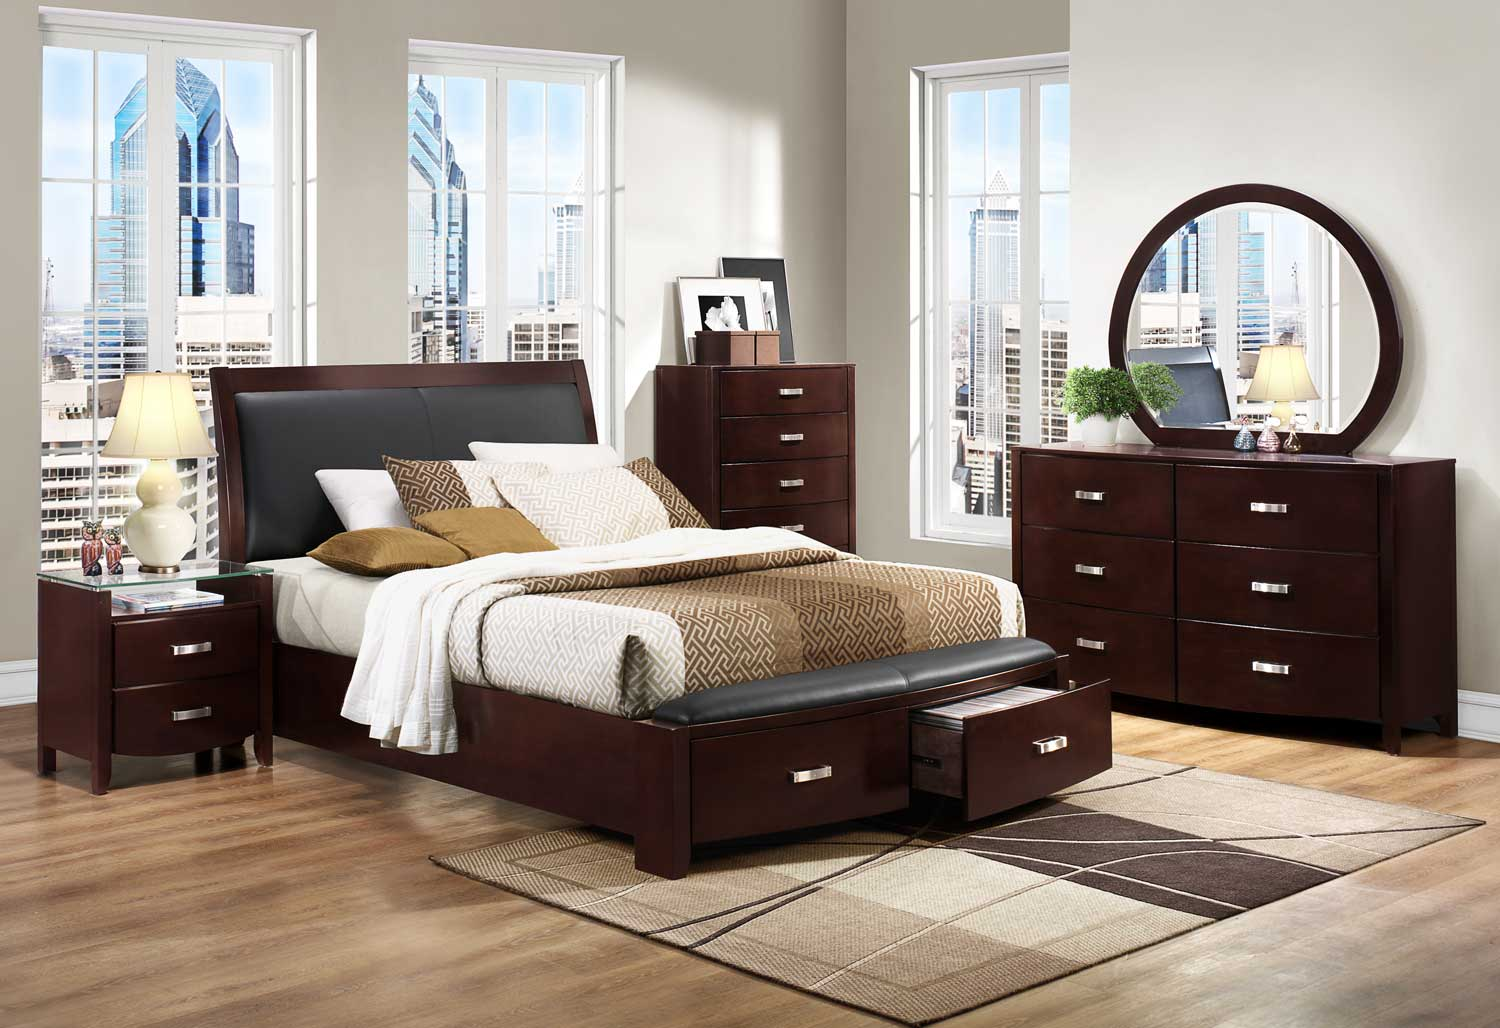 Homelegance Lyric Platform Bedroom Set Dark Espresso B1737nc Bed Set At Homelement Com